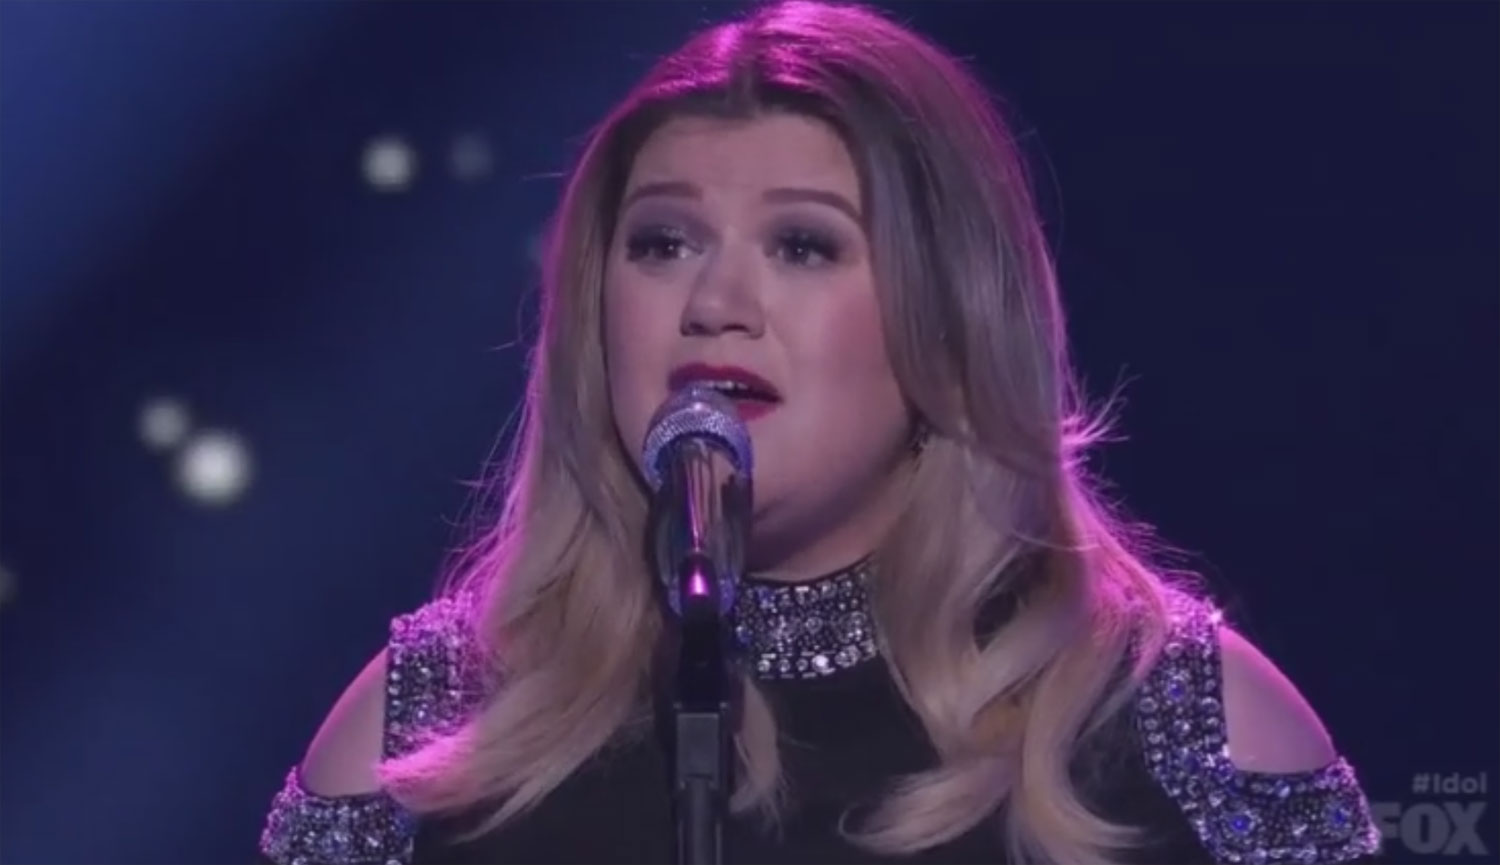 Kelly clarkson weight gain 2013 grammys kelly clarkson performs on